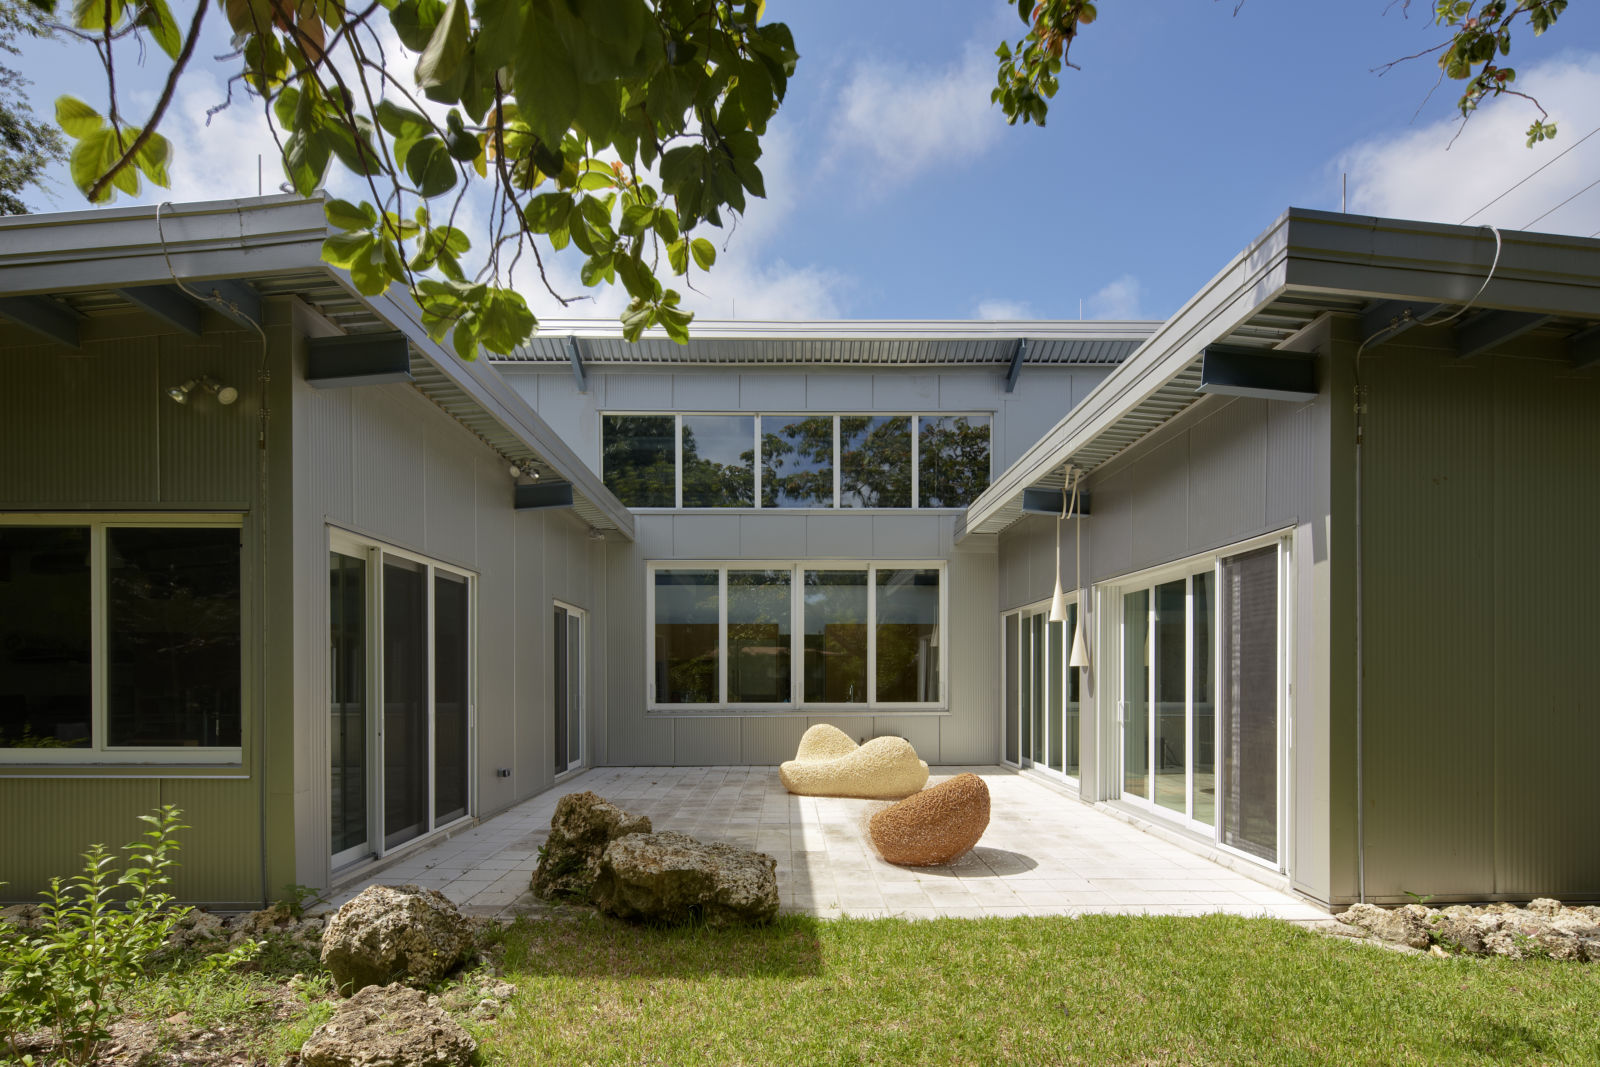 AIA Miami 113 EcoSteel Prefab Homes & Green Building